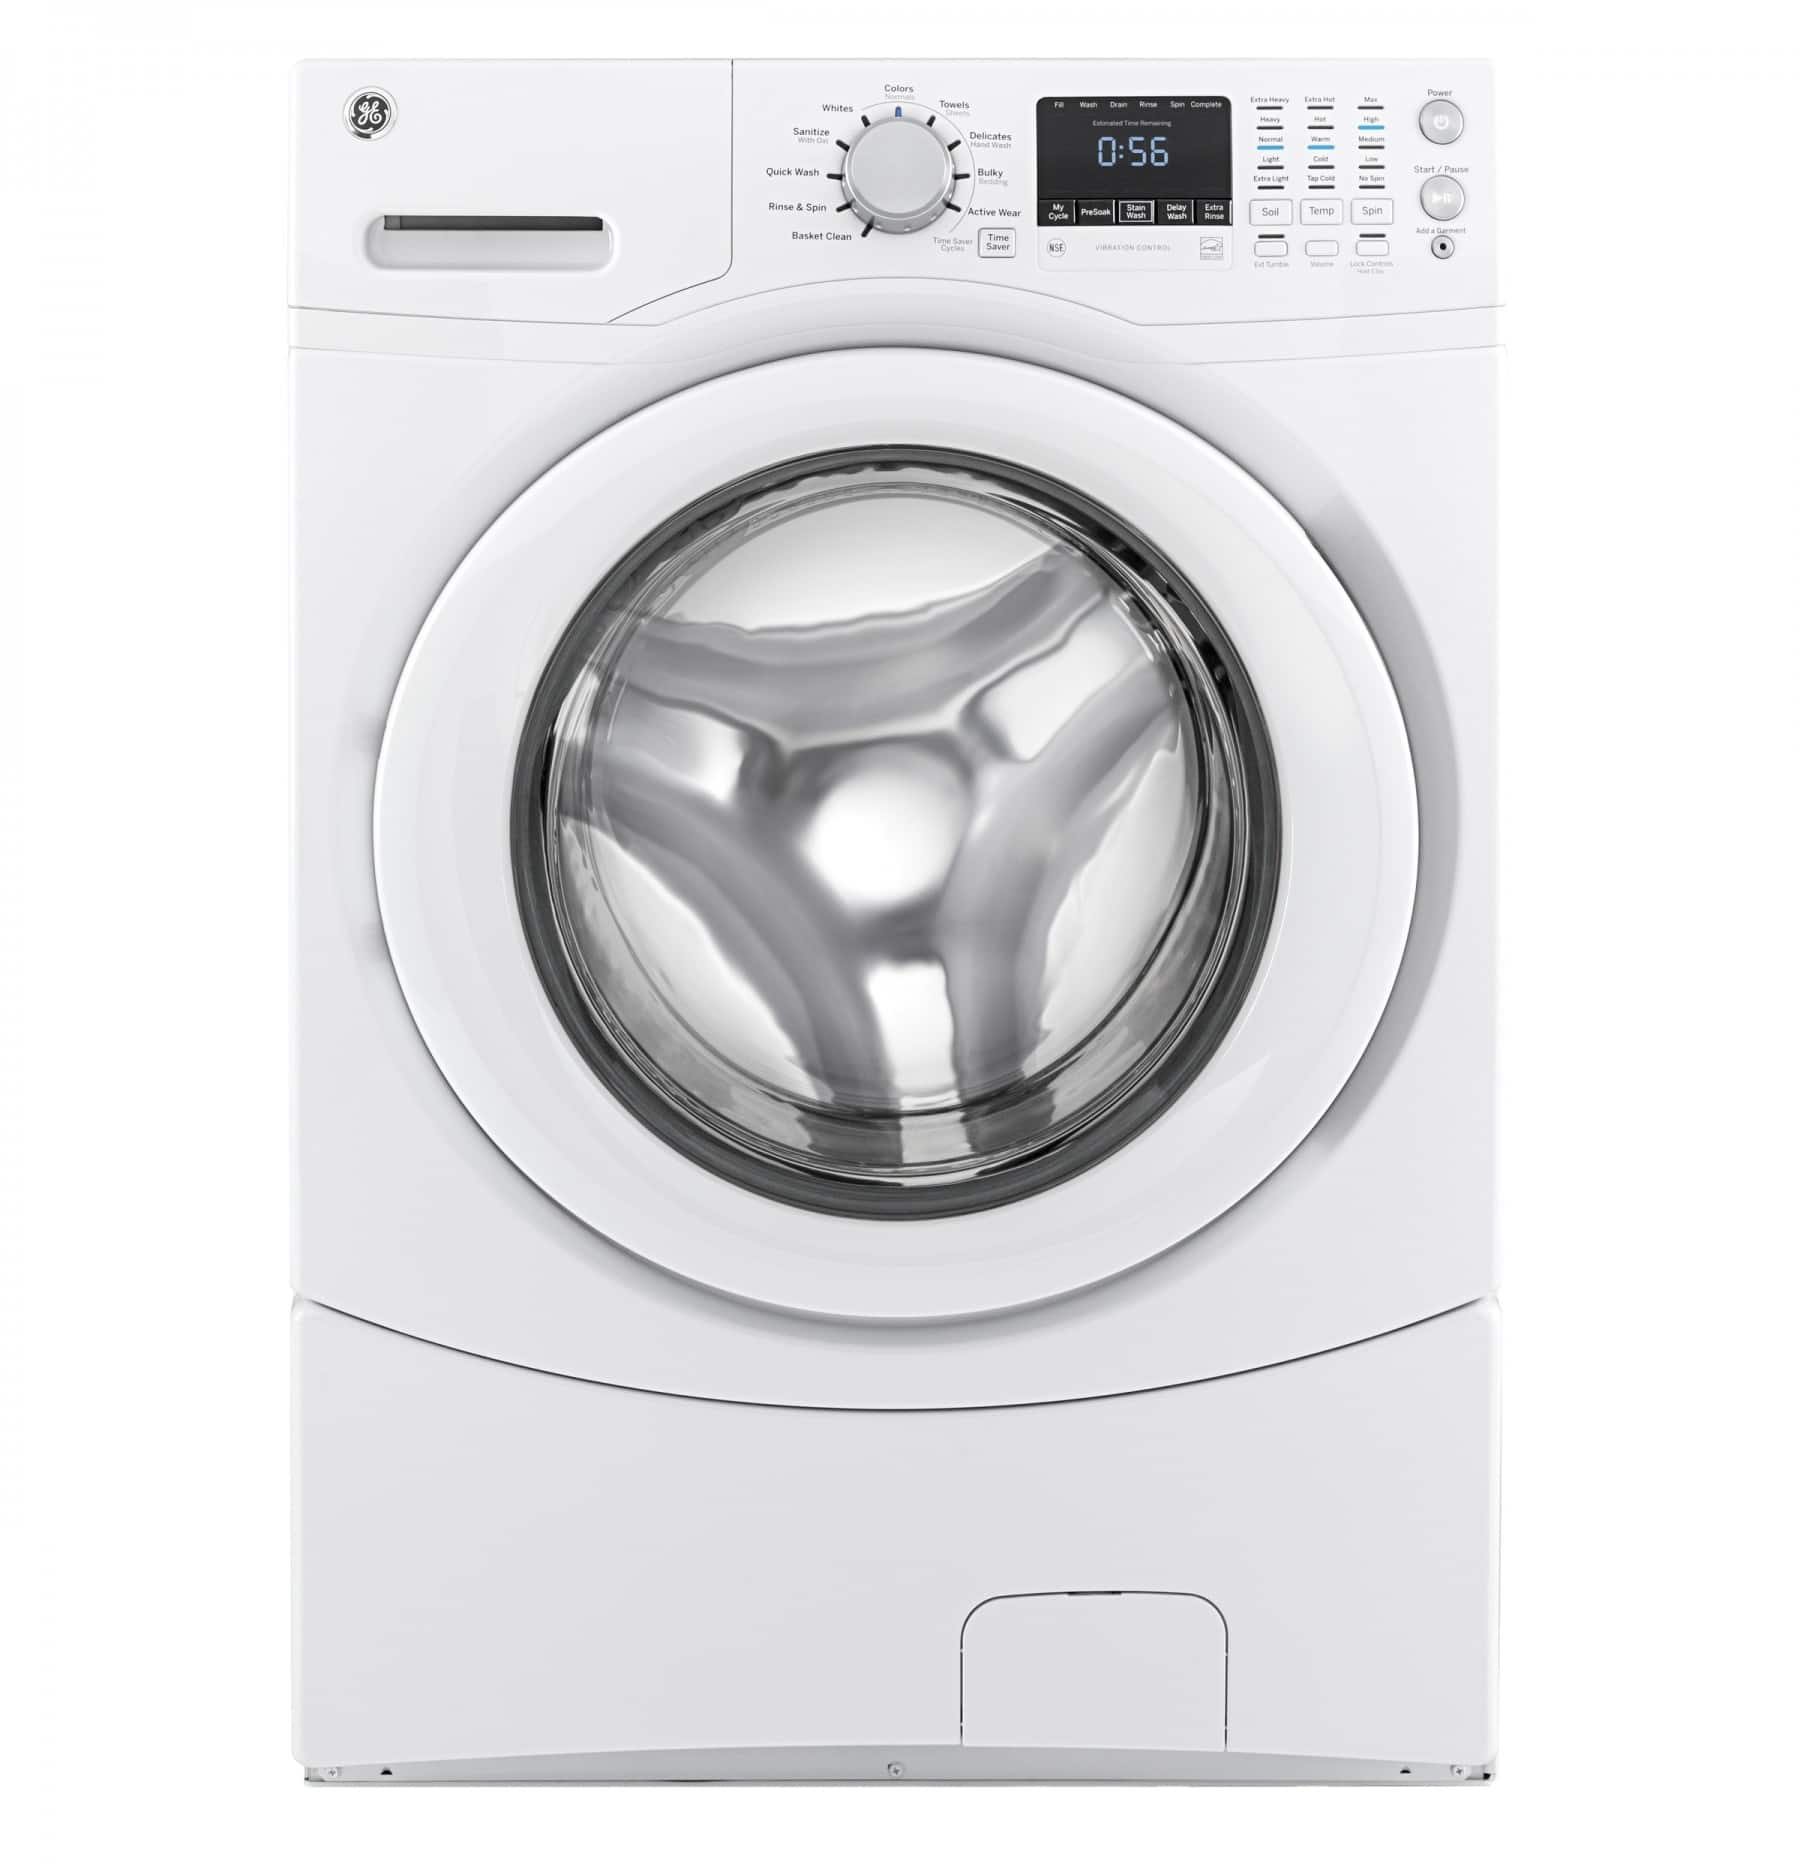 GE 4.3 CU. FT. WHITE FRONT LOAD WASHER - ENERGY STAR Model # GFWN1600JWW $528.00